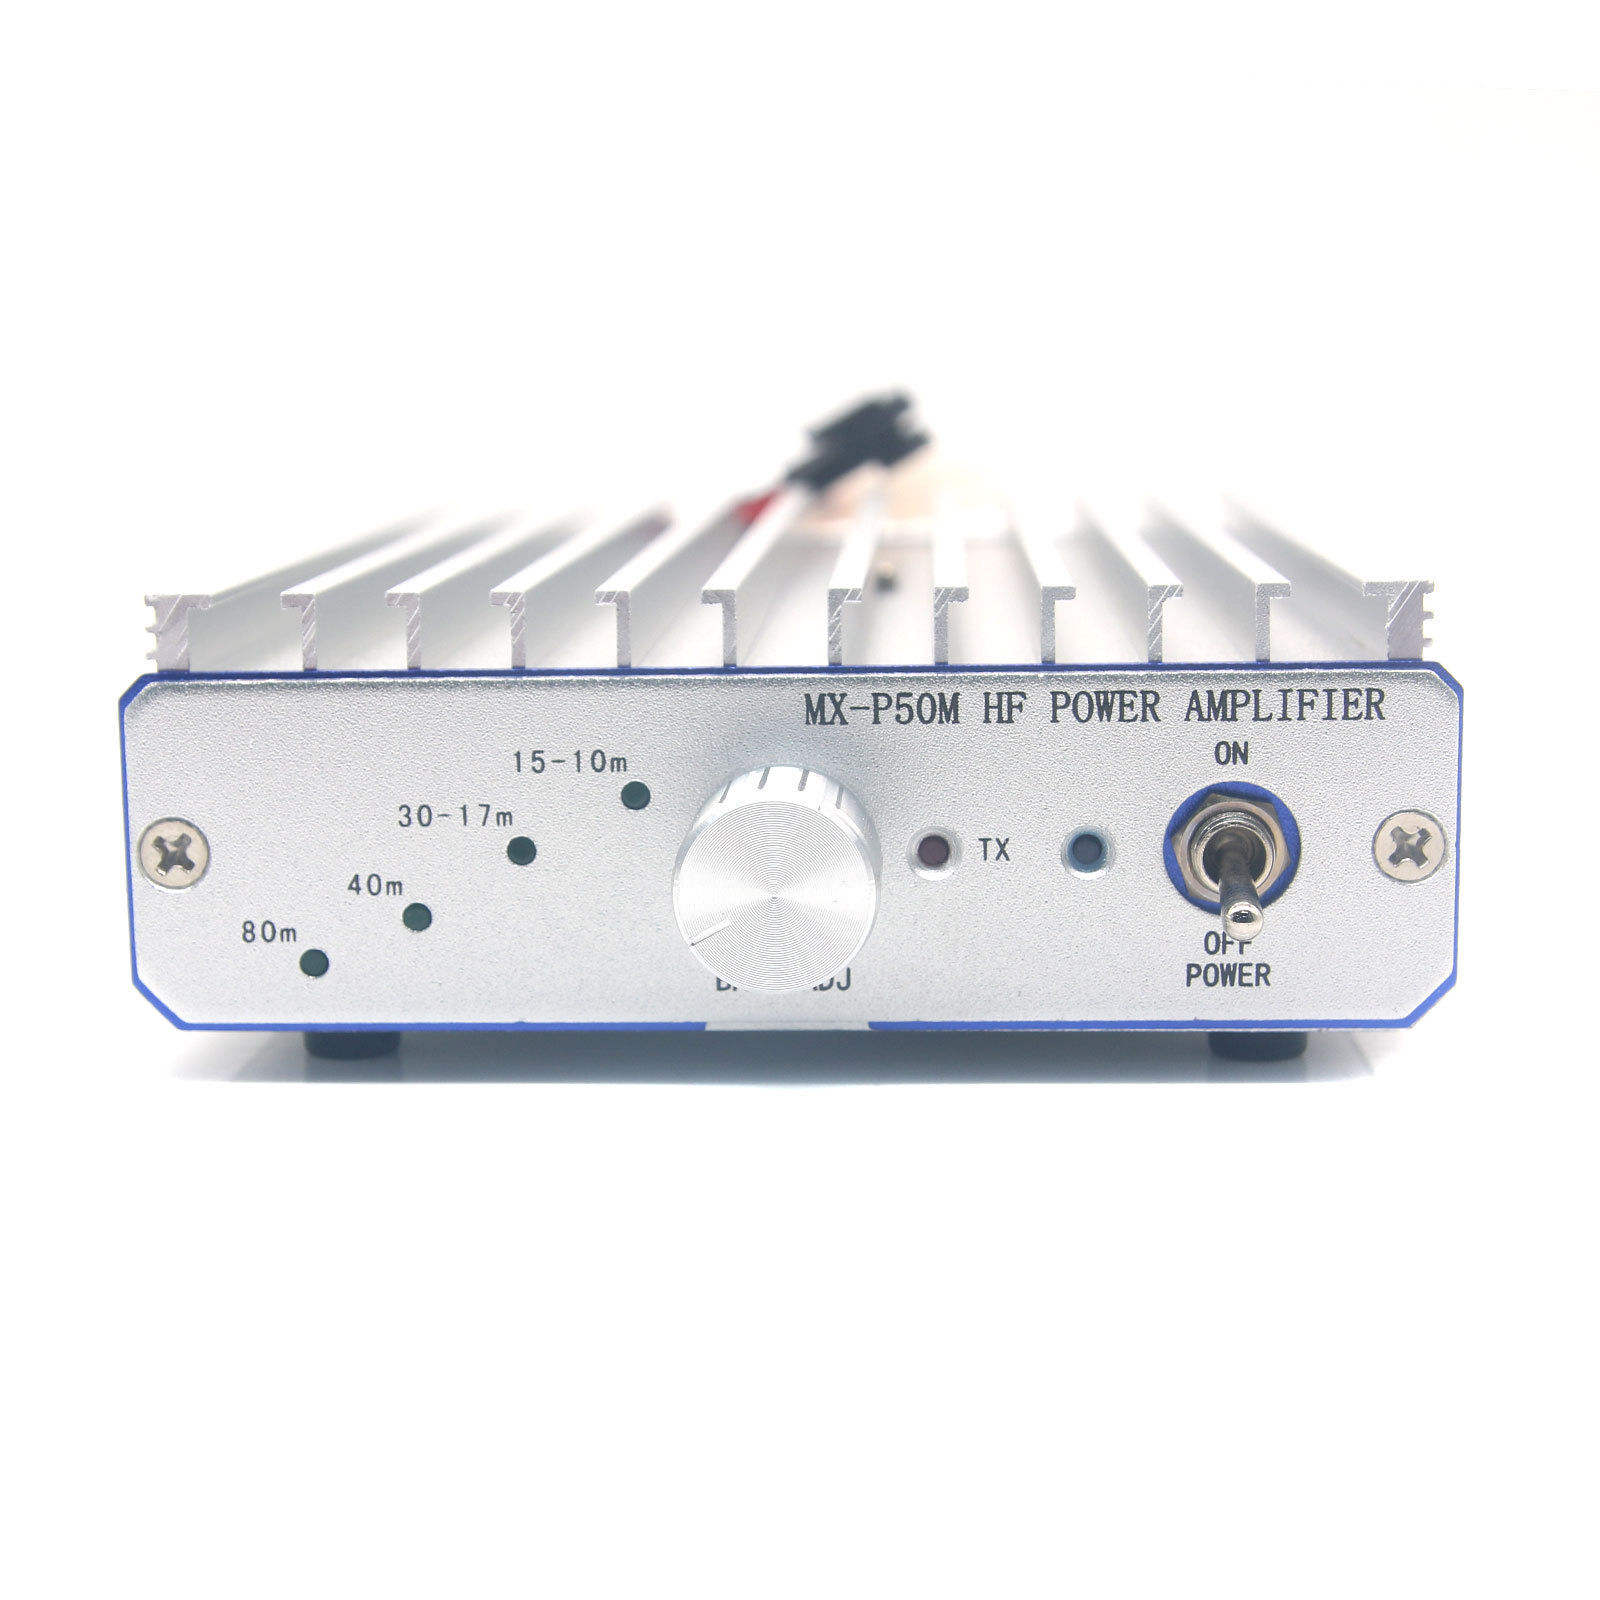 45 w MX-P50m HF High Power Versterker Voor FT-817 IC-703 Elecraft KX3 QRP Ham Radio